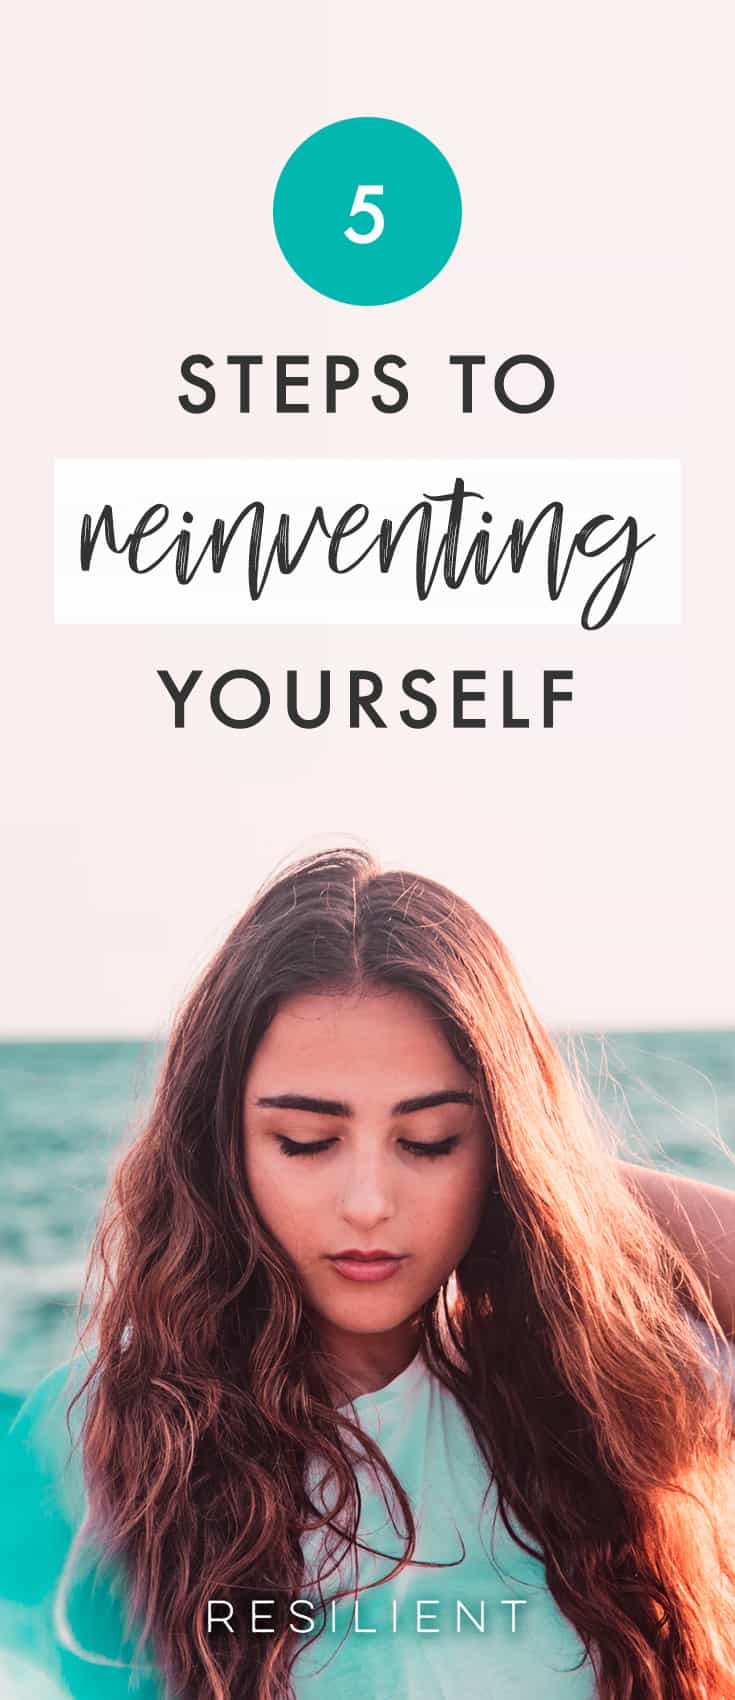 If you are feeling bored or unsatisfied with your life, or finding that you envy others, then it may be time for a change. Reinventing yourself may sound like a huge life choice, or something only celebrities do, but reinvention does not have to be costly or time consuming. It is normal to feel stuck and unmotivated sometimes. Here are 5 steps to reinventing yourself.